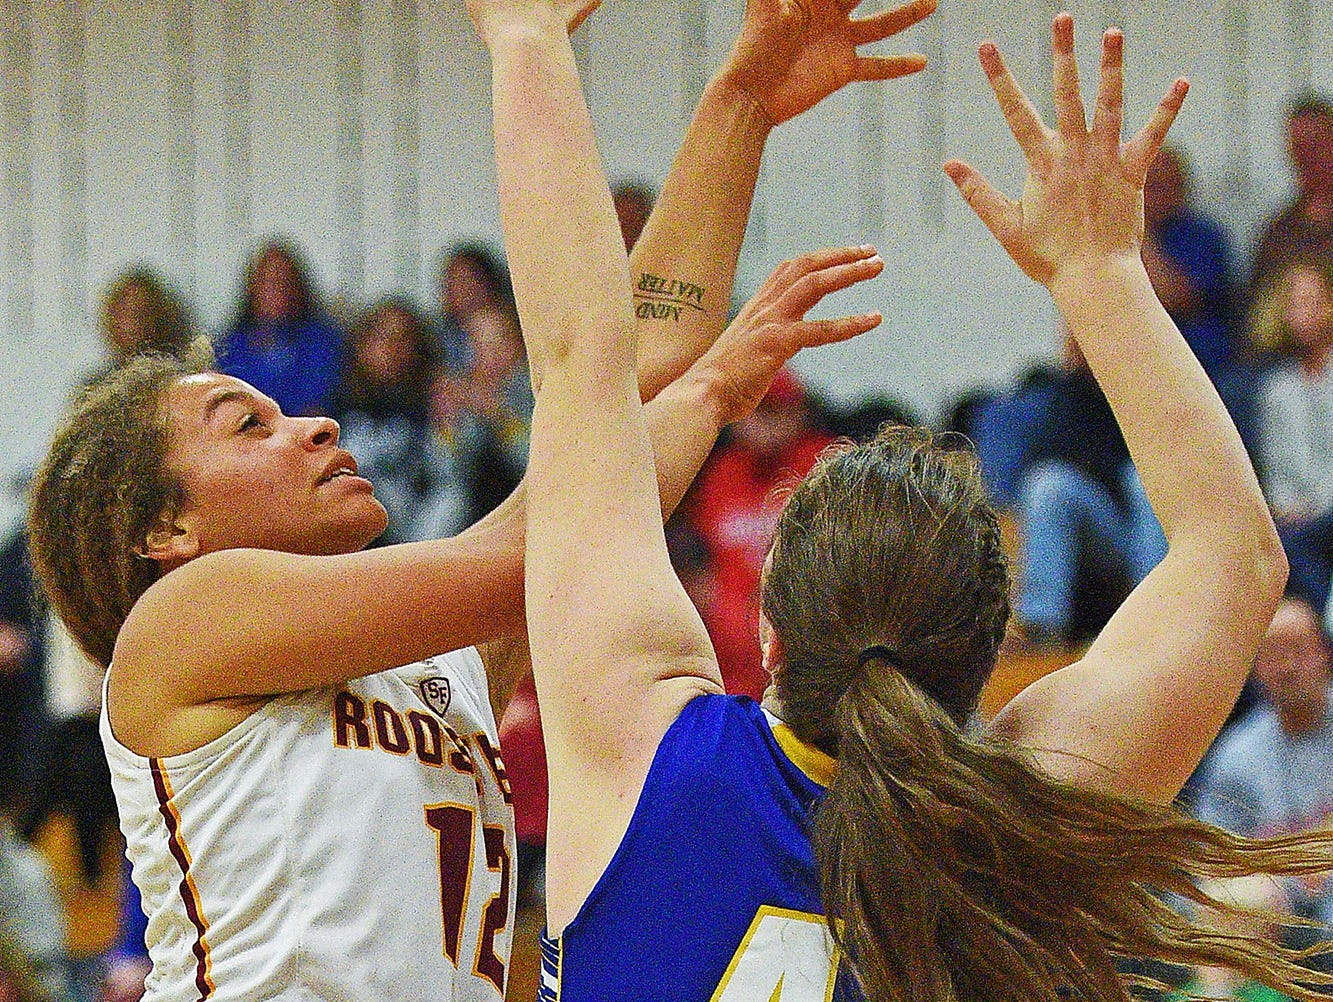 Roosevelt's Kira Ward (12) takes a shot as O'Gorman's Courtney Baruth (41) defends during a game Friday, Dec. 9, 2016, at Roosevelt High School in Sioux Falls.